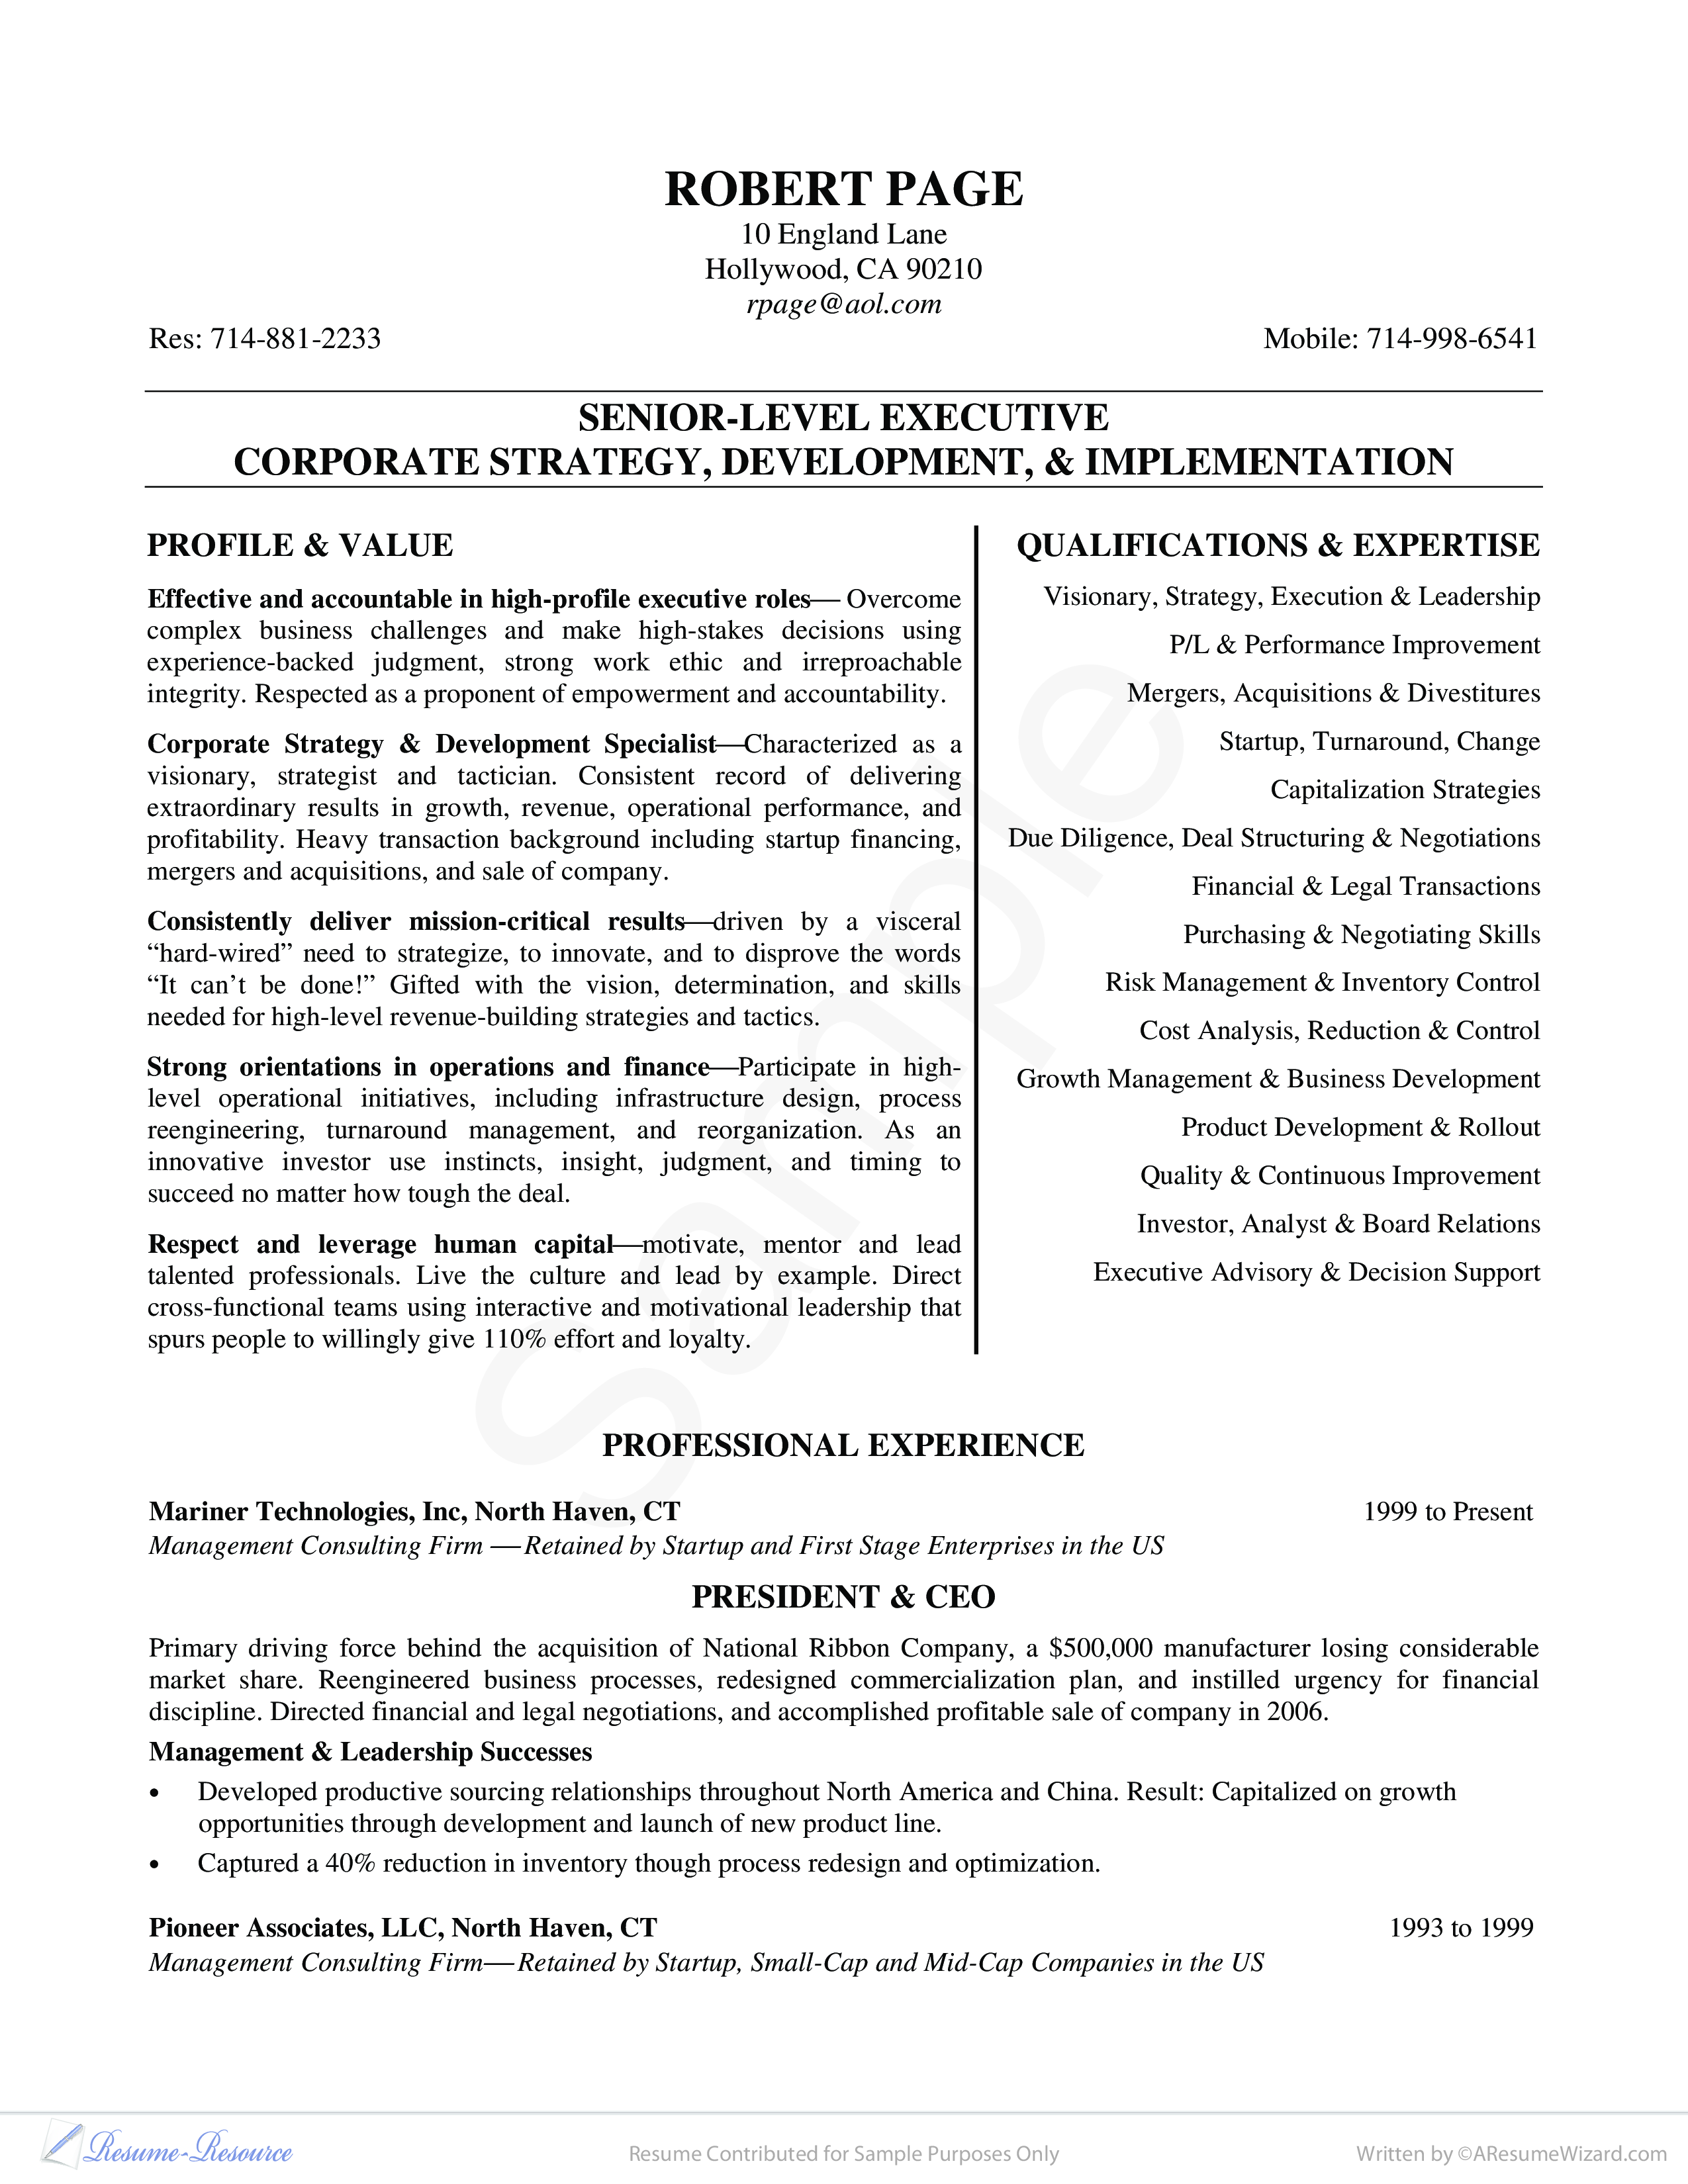 Exex11 Pdf Contributed For Business Resume Examples Job Resume Examples Good Resume Examples